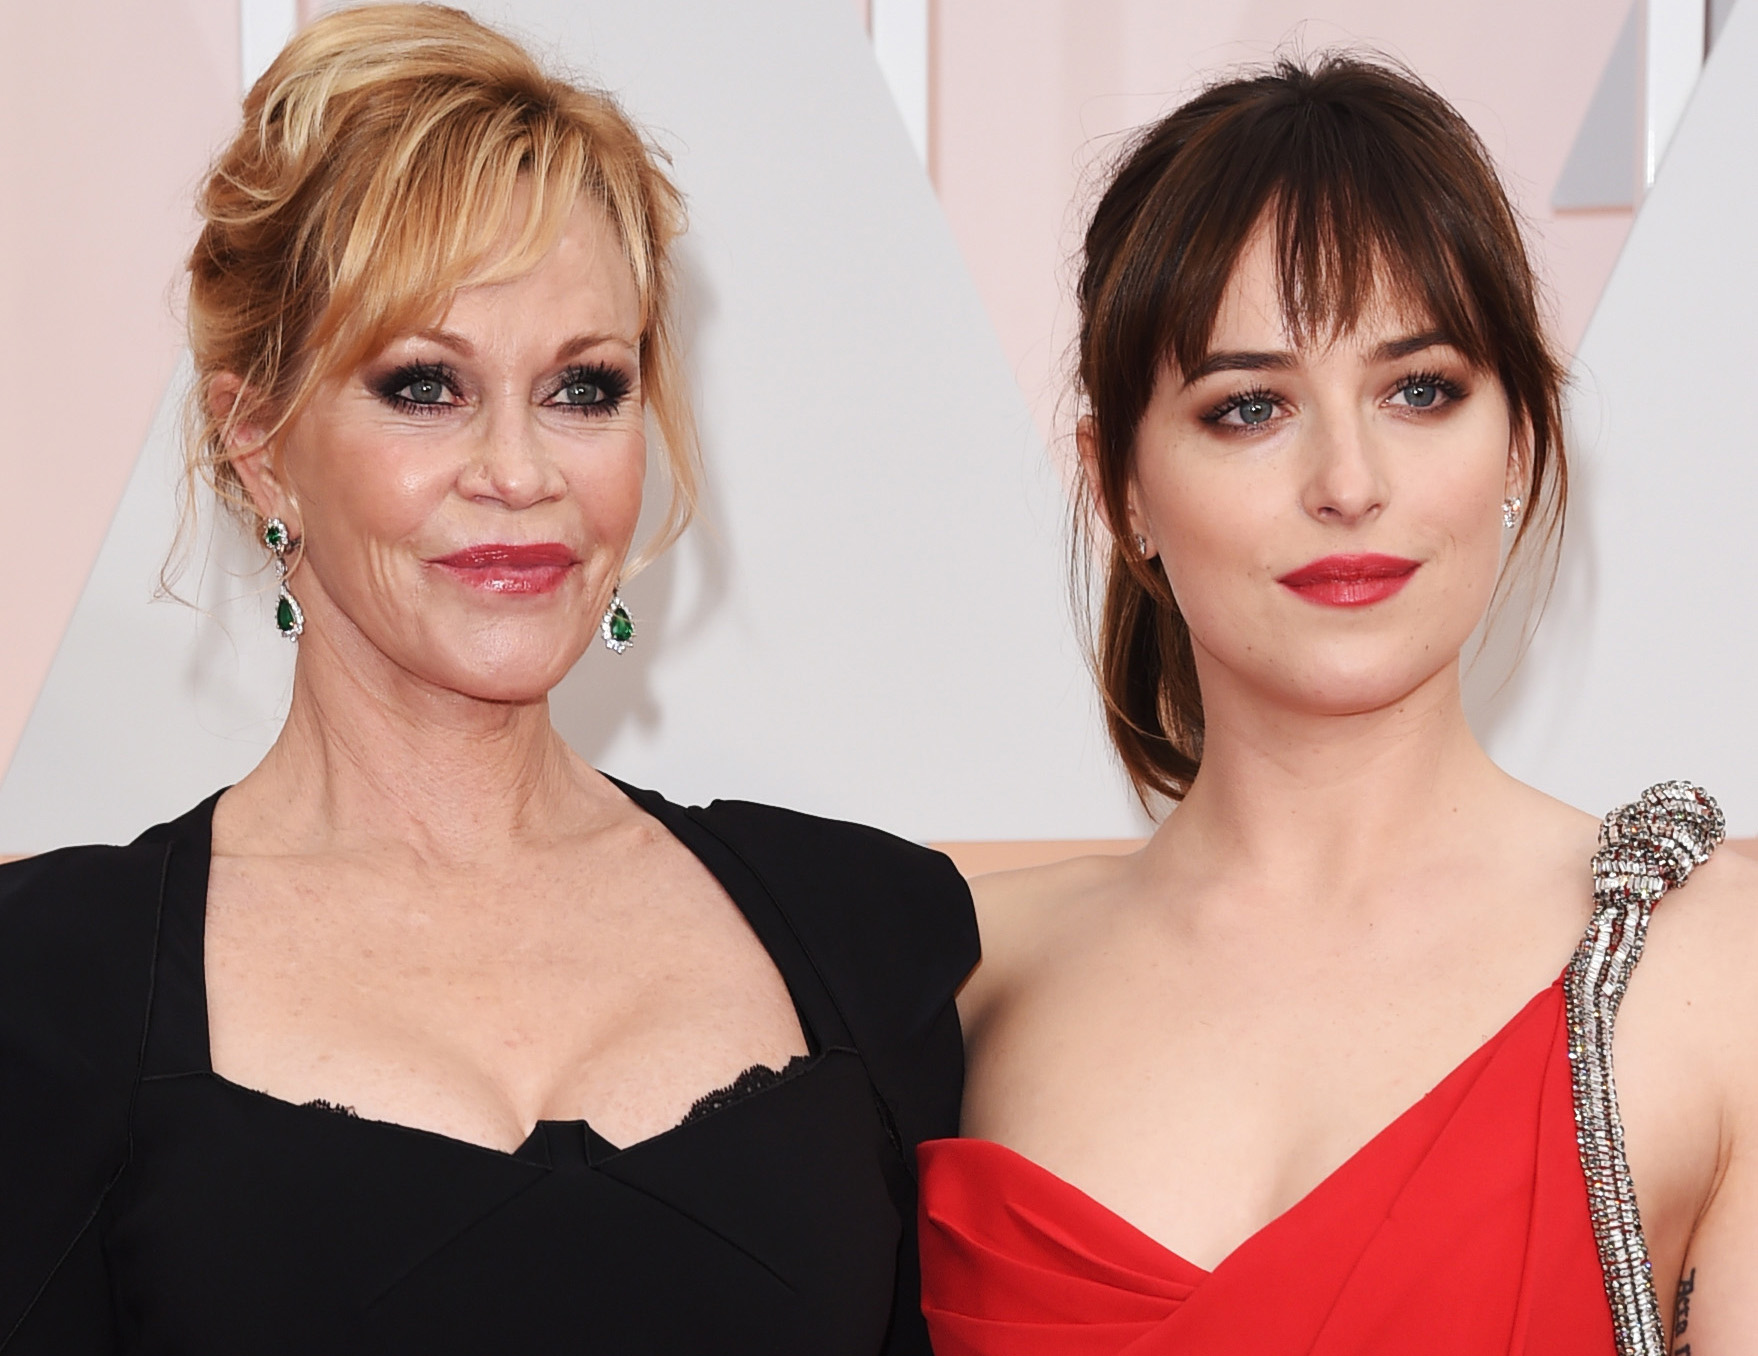 HOLLYWOOD, CA - FEBRUARY 22: Actresses Melanie Griffith (L) and Dakota Johnson attend the 87th Annual Academy Awards at Hollywood & Highland Center on February 22, 2015 in Hollywood, California. (Photo by Jason Merritt/Getty Images)